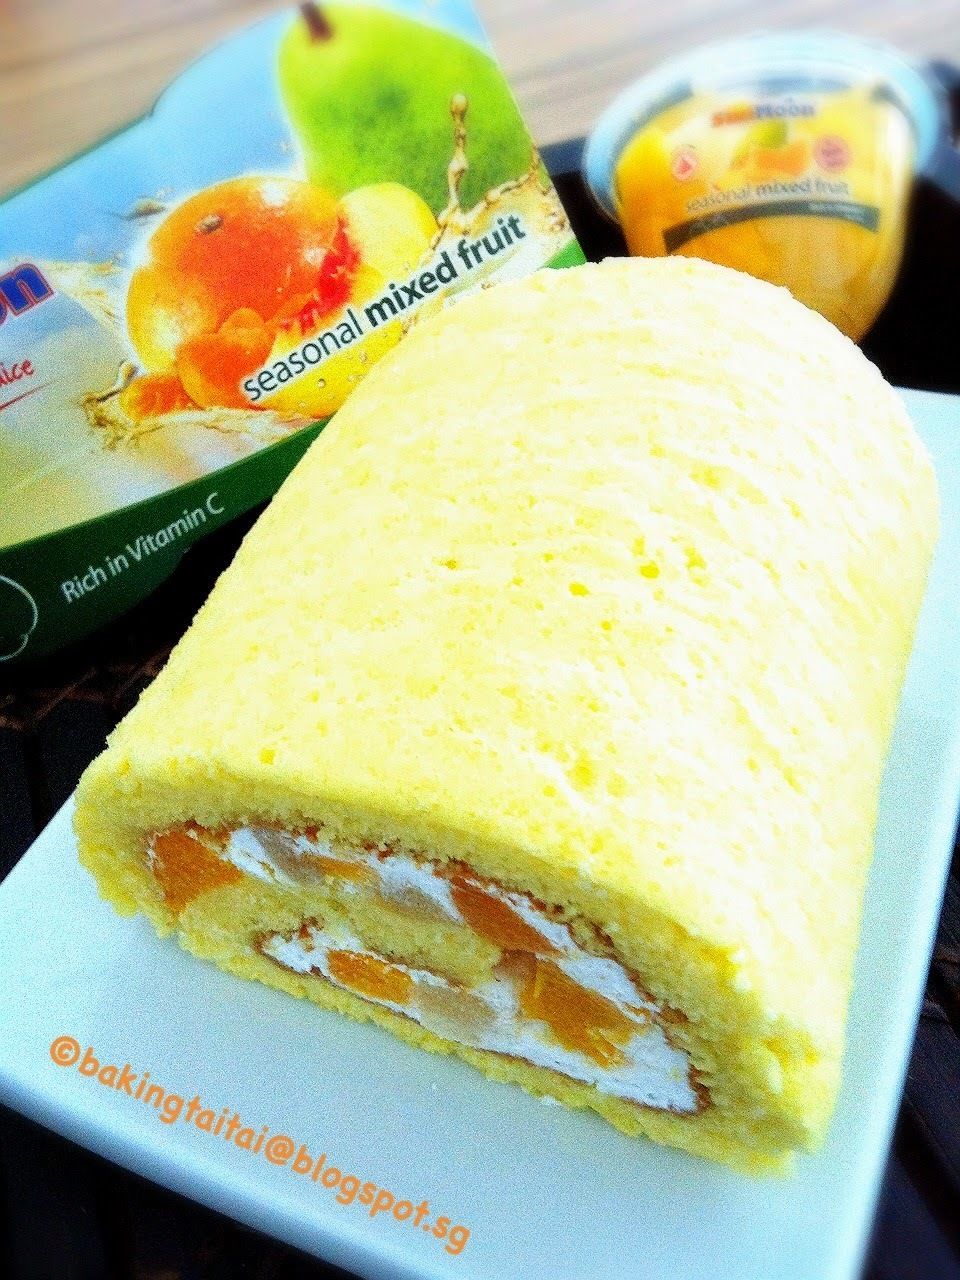 Mixed Fruits Swiss Roll + SunMoon Goodie Bags Giveaway #1 水果蛋糕卷+ SunMoon 礼包赠品#1